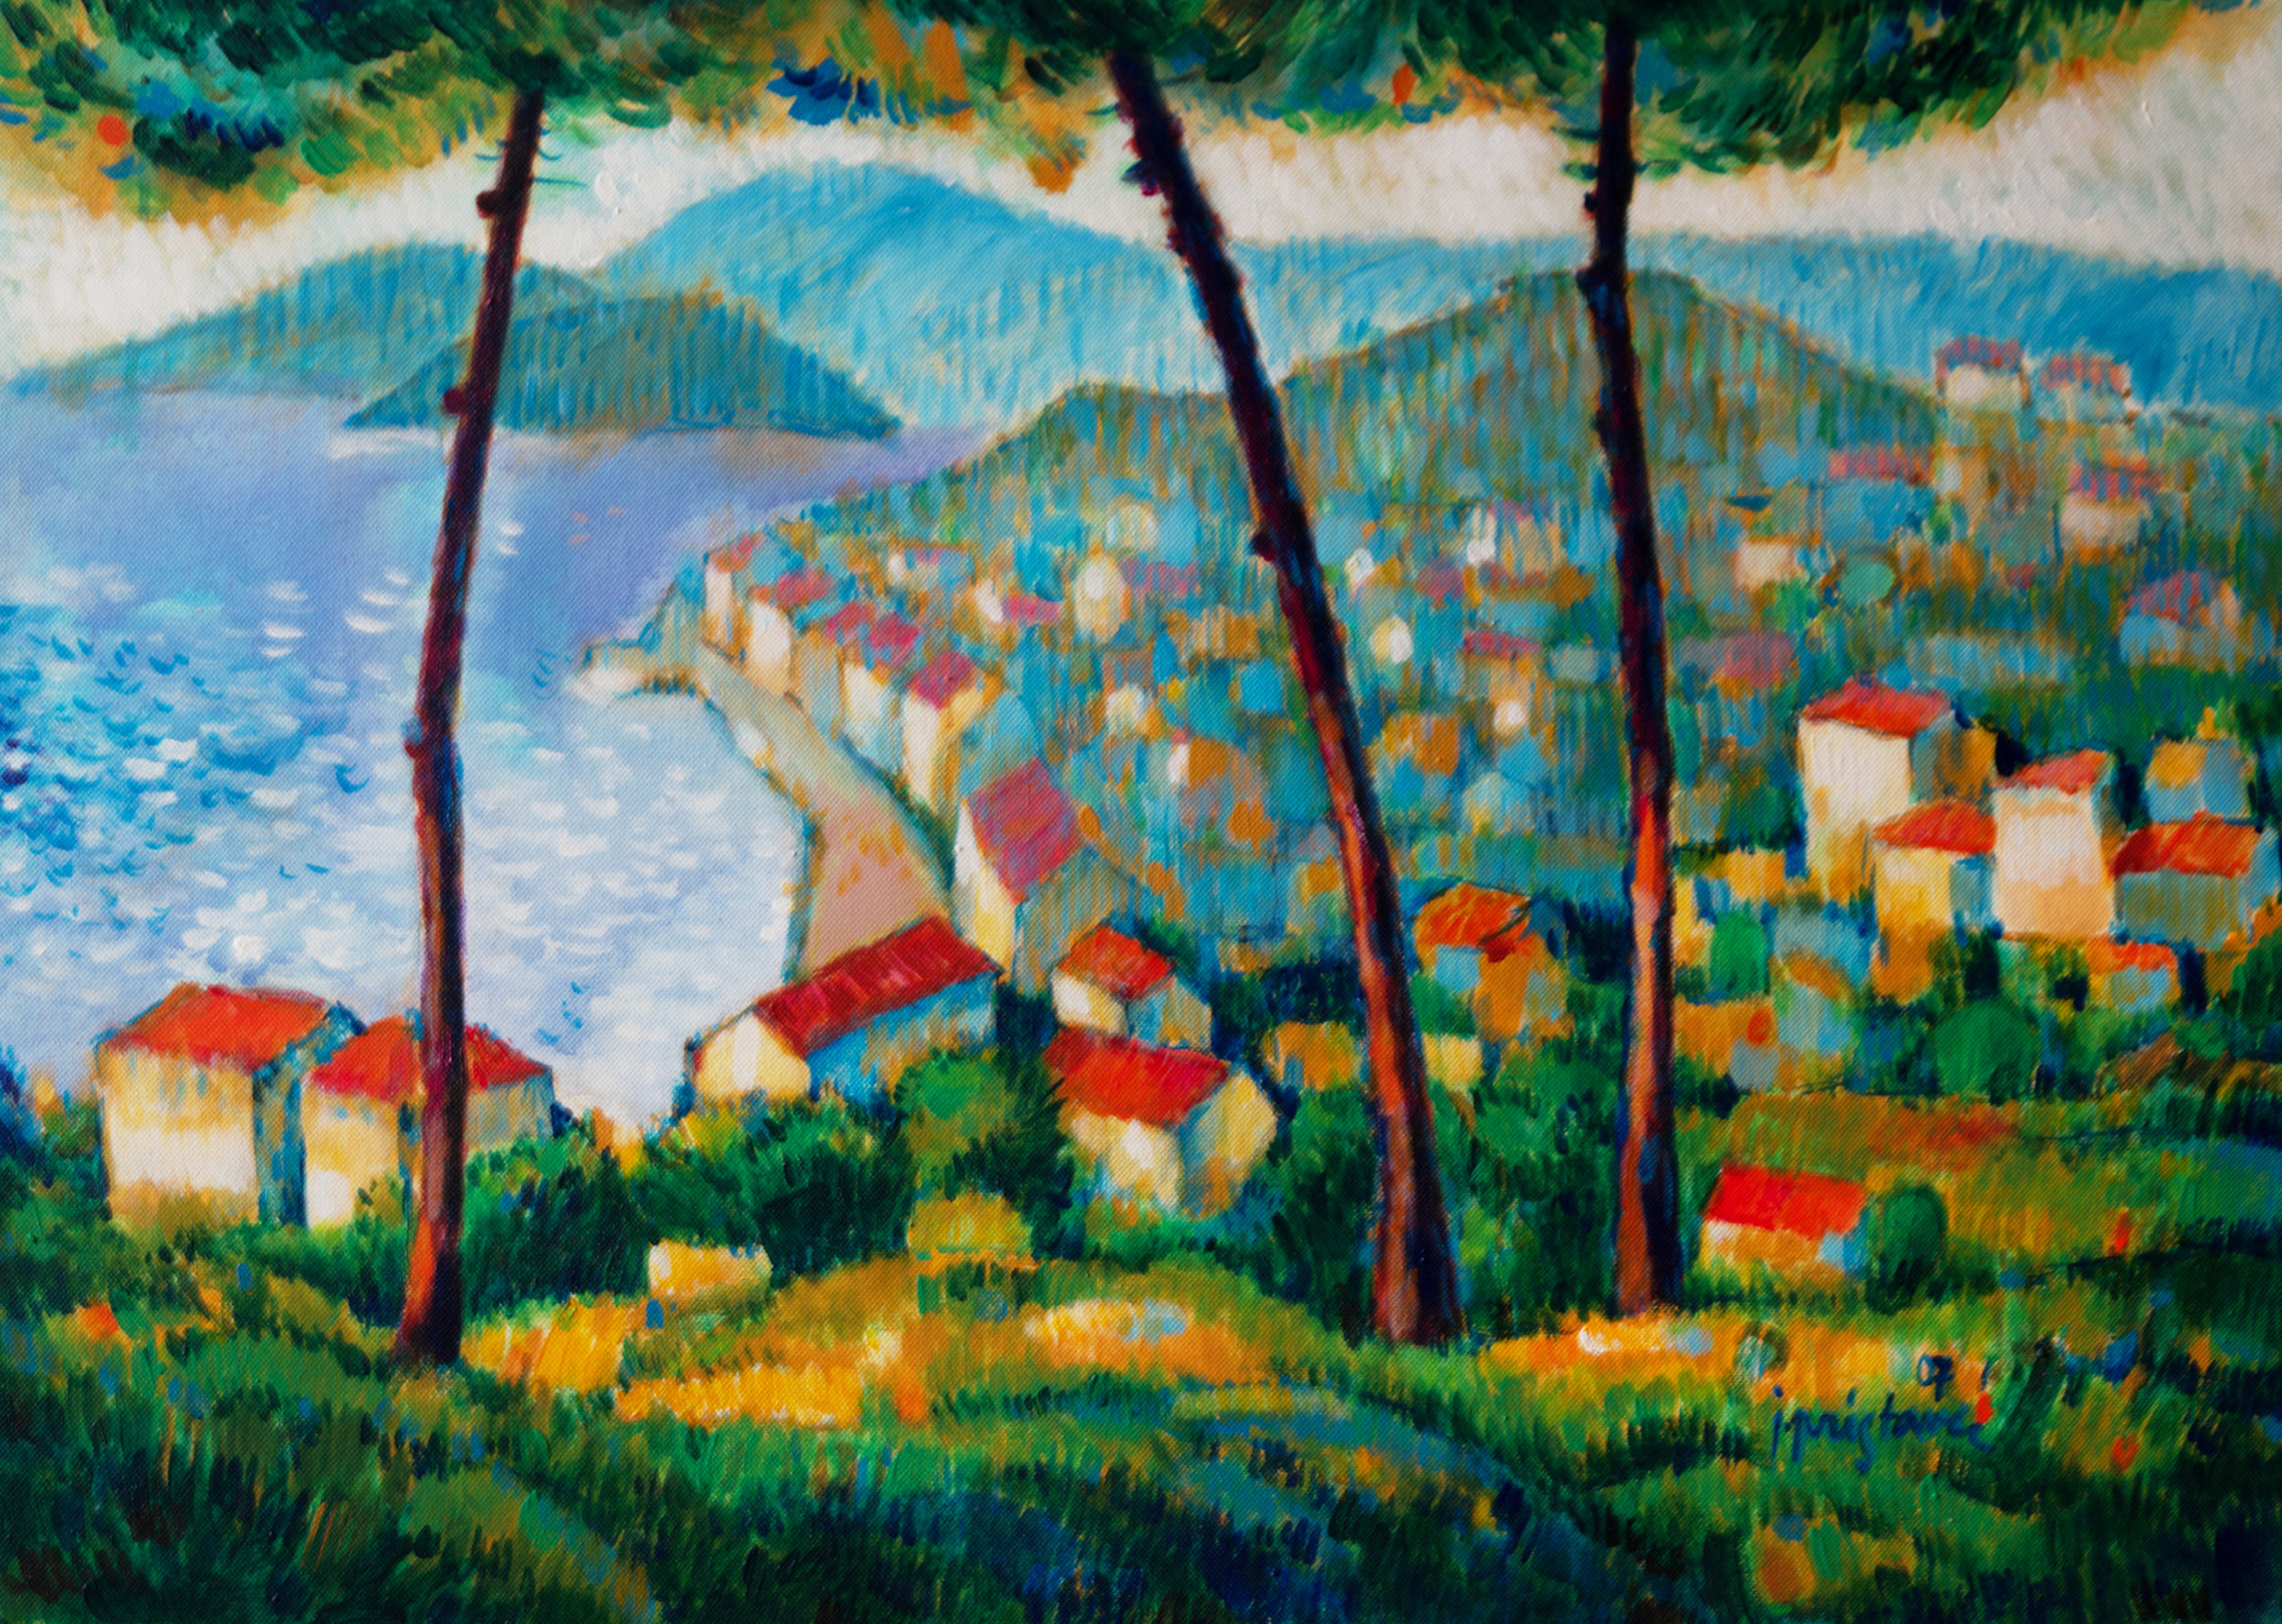 Adriatic  / 2007 / oil on canvas / 70 x 50 cm